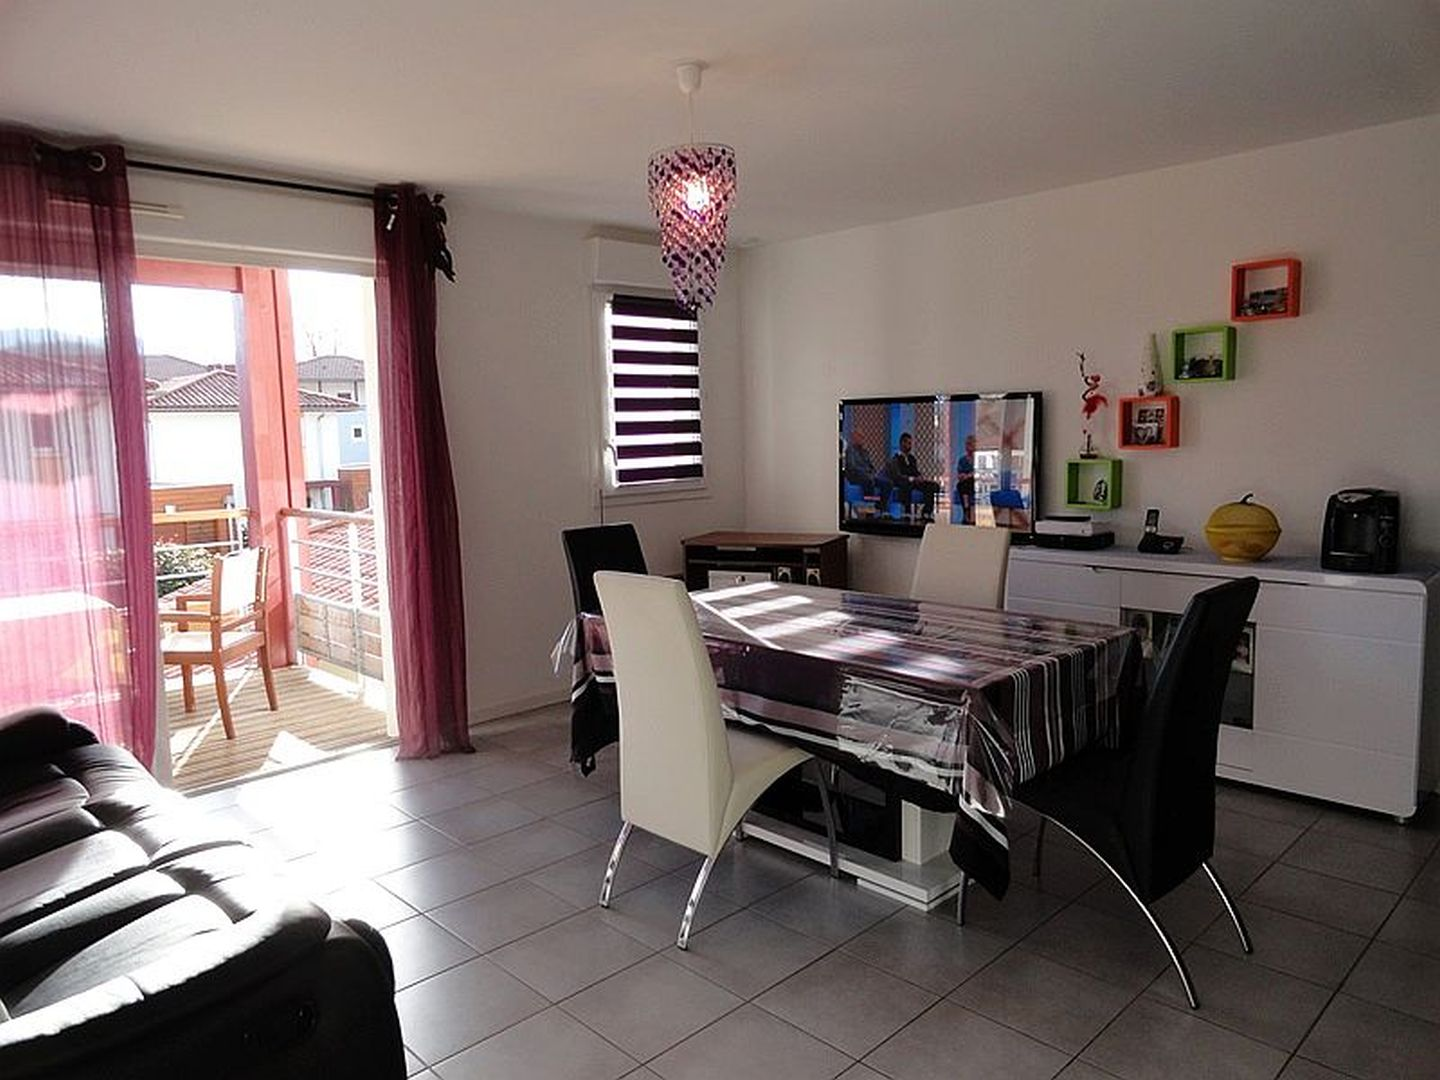 Appartement Charlet Code GBA à SaintJeanPieddePort - Location st jean pied de port